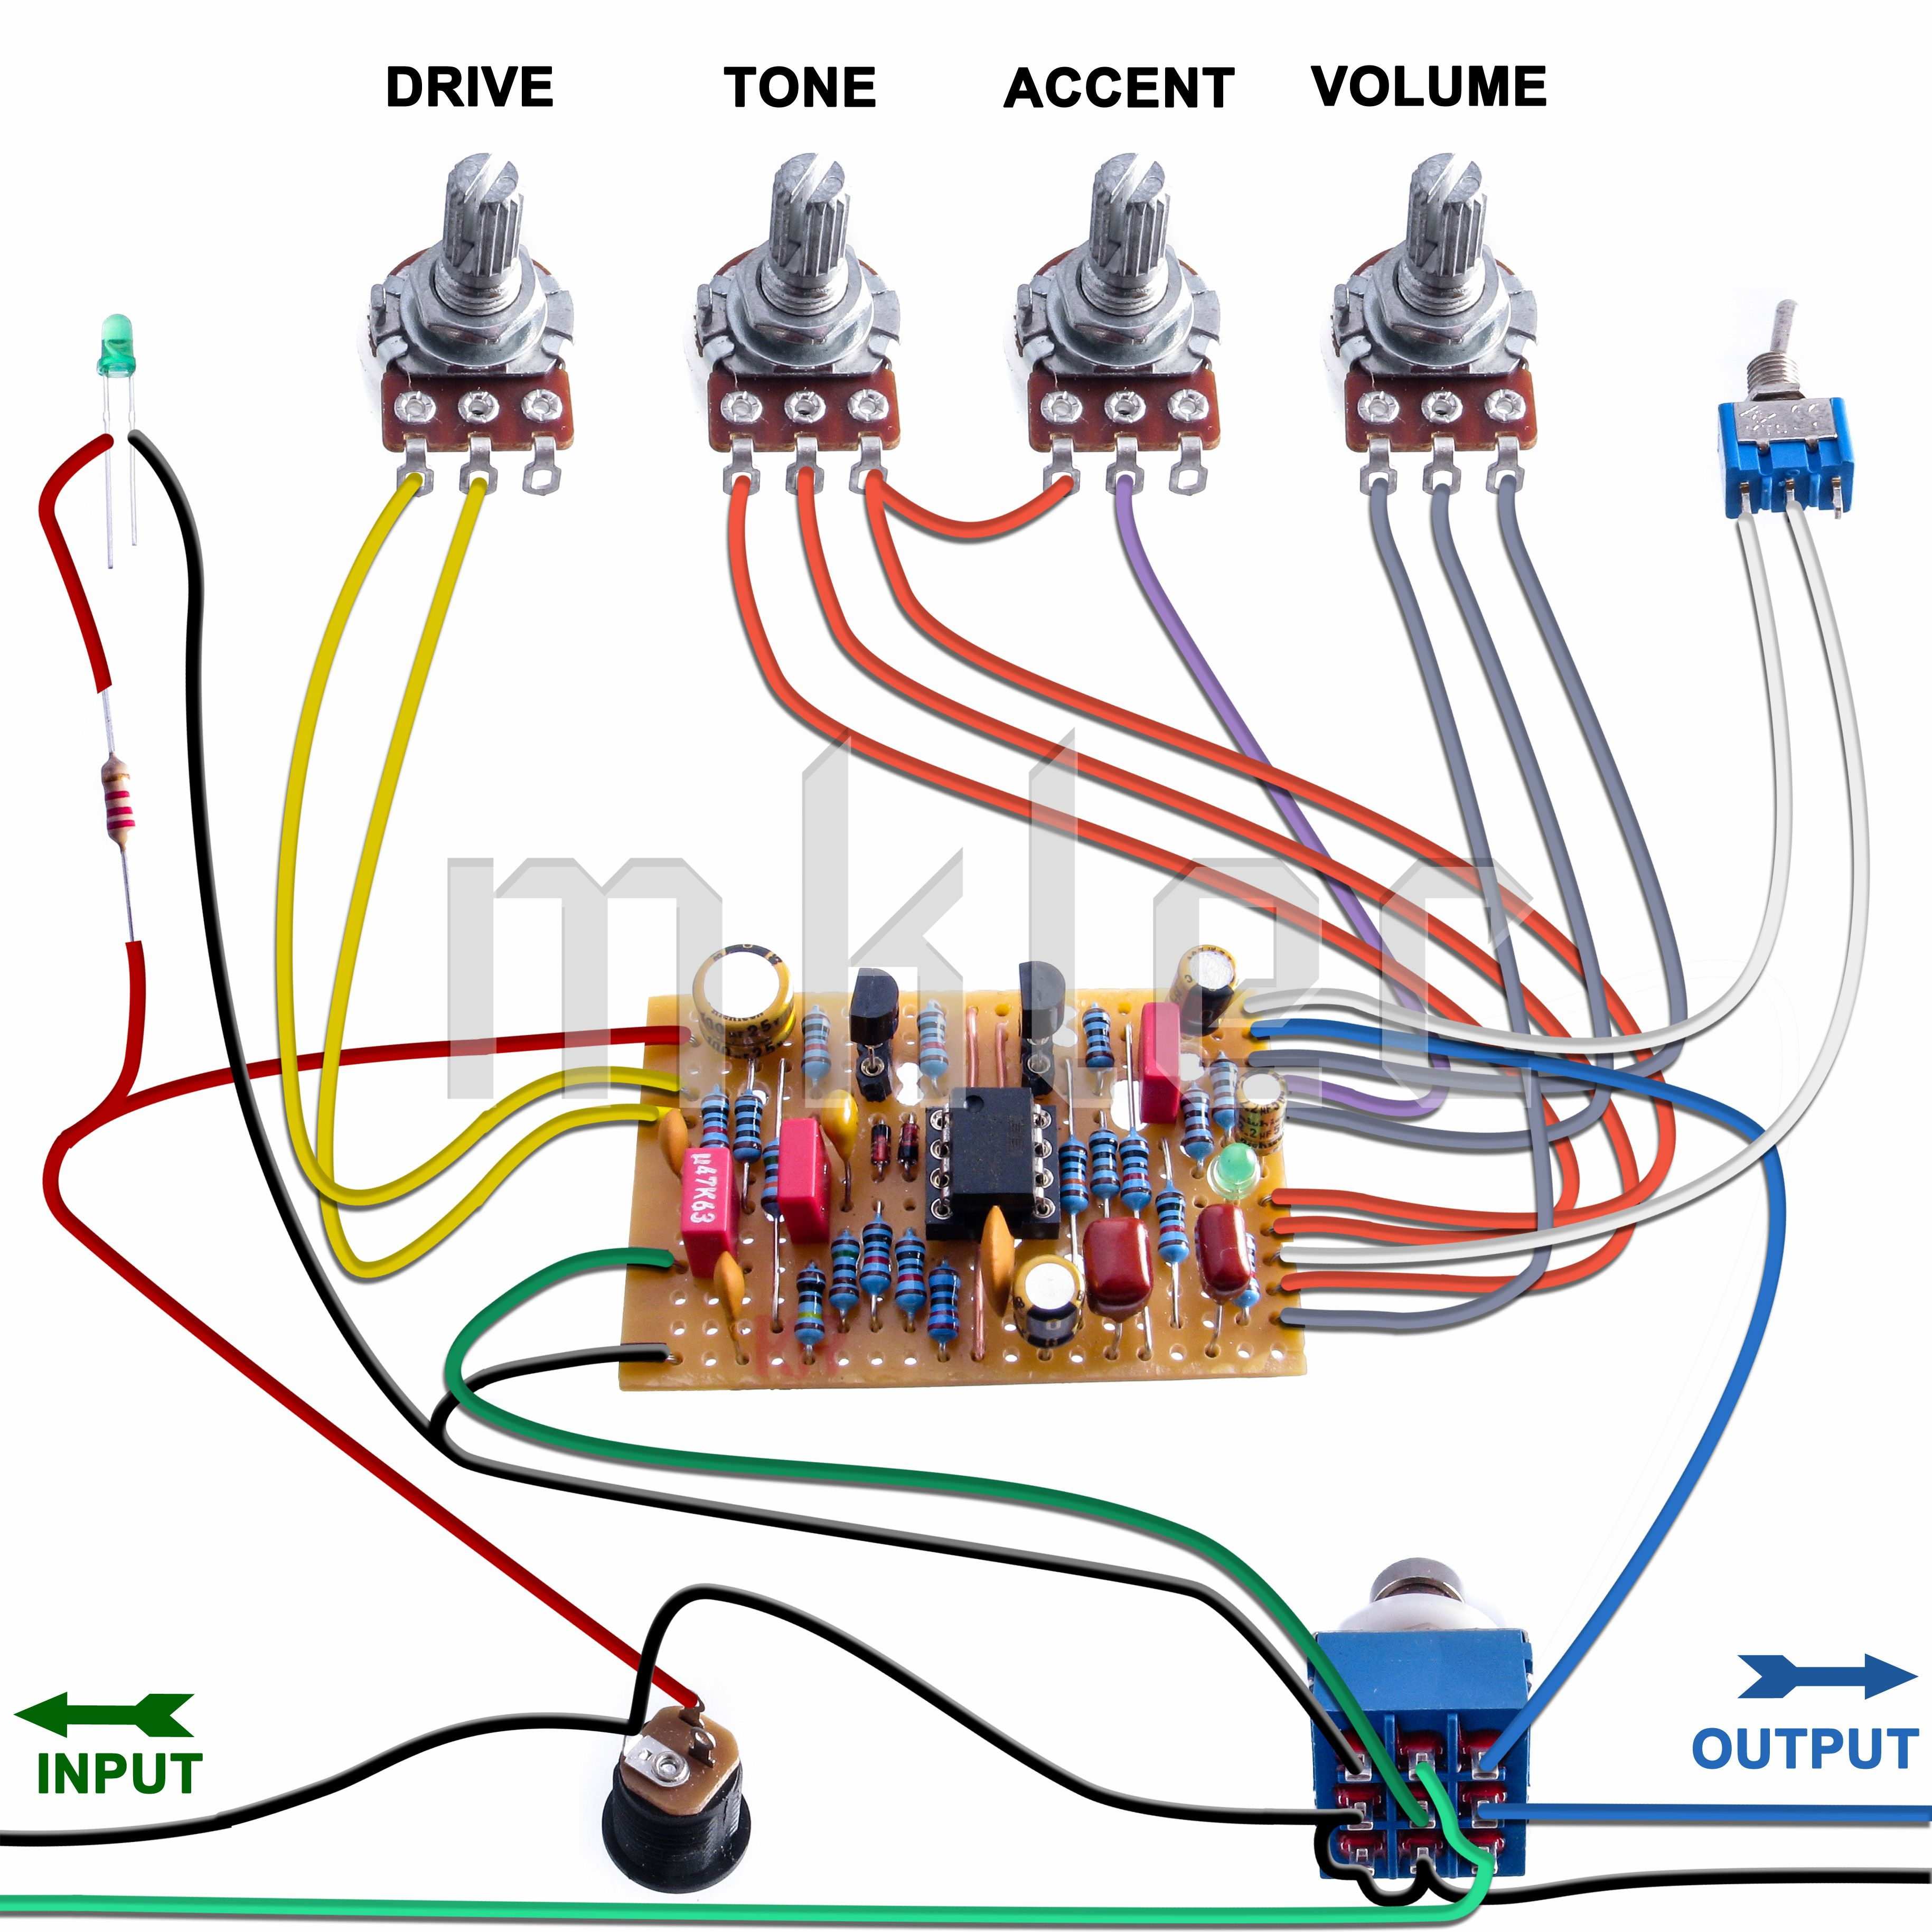 hight resolution of guitar effects pedal offboard wiring demystified guitar wiring electric guitar wiring guitar effects pedal offboard wiring